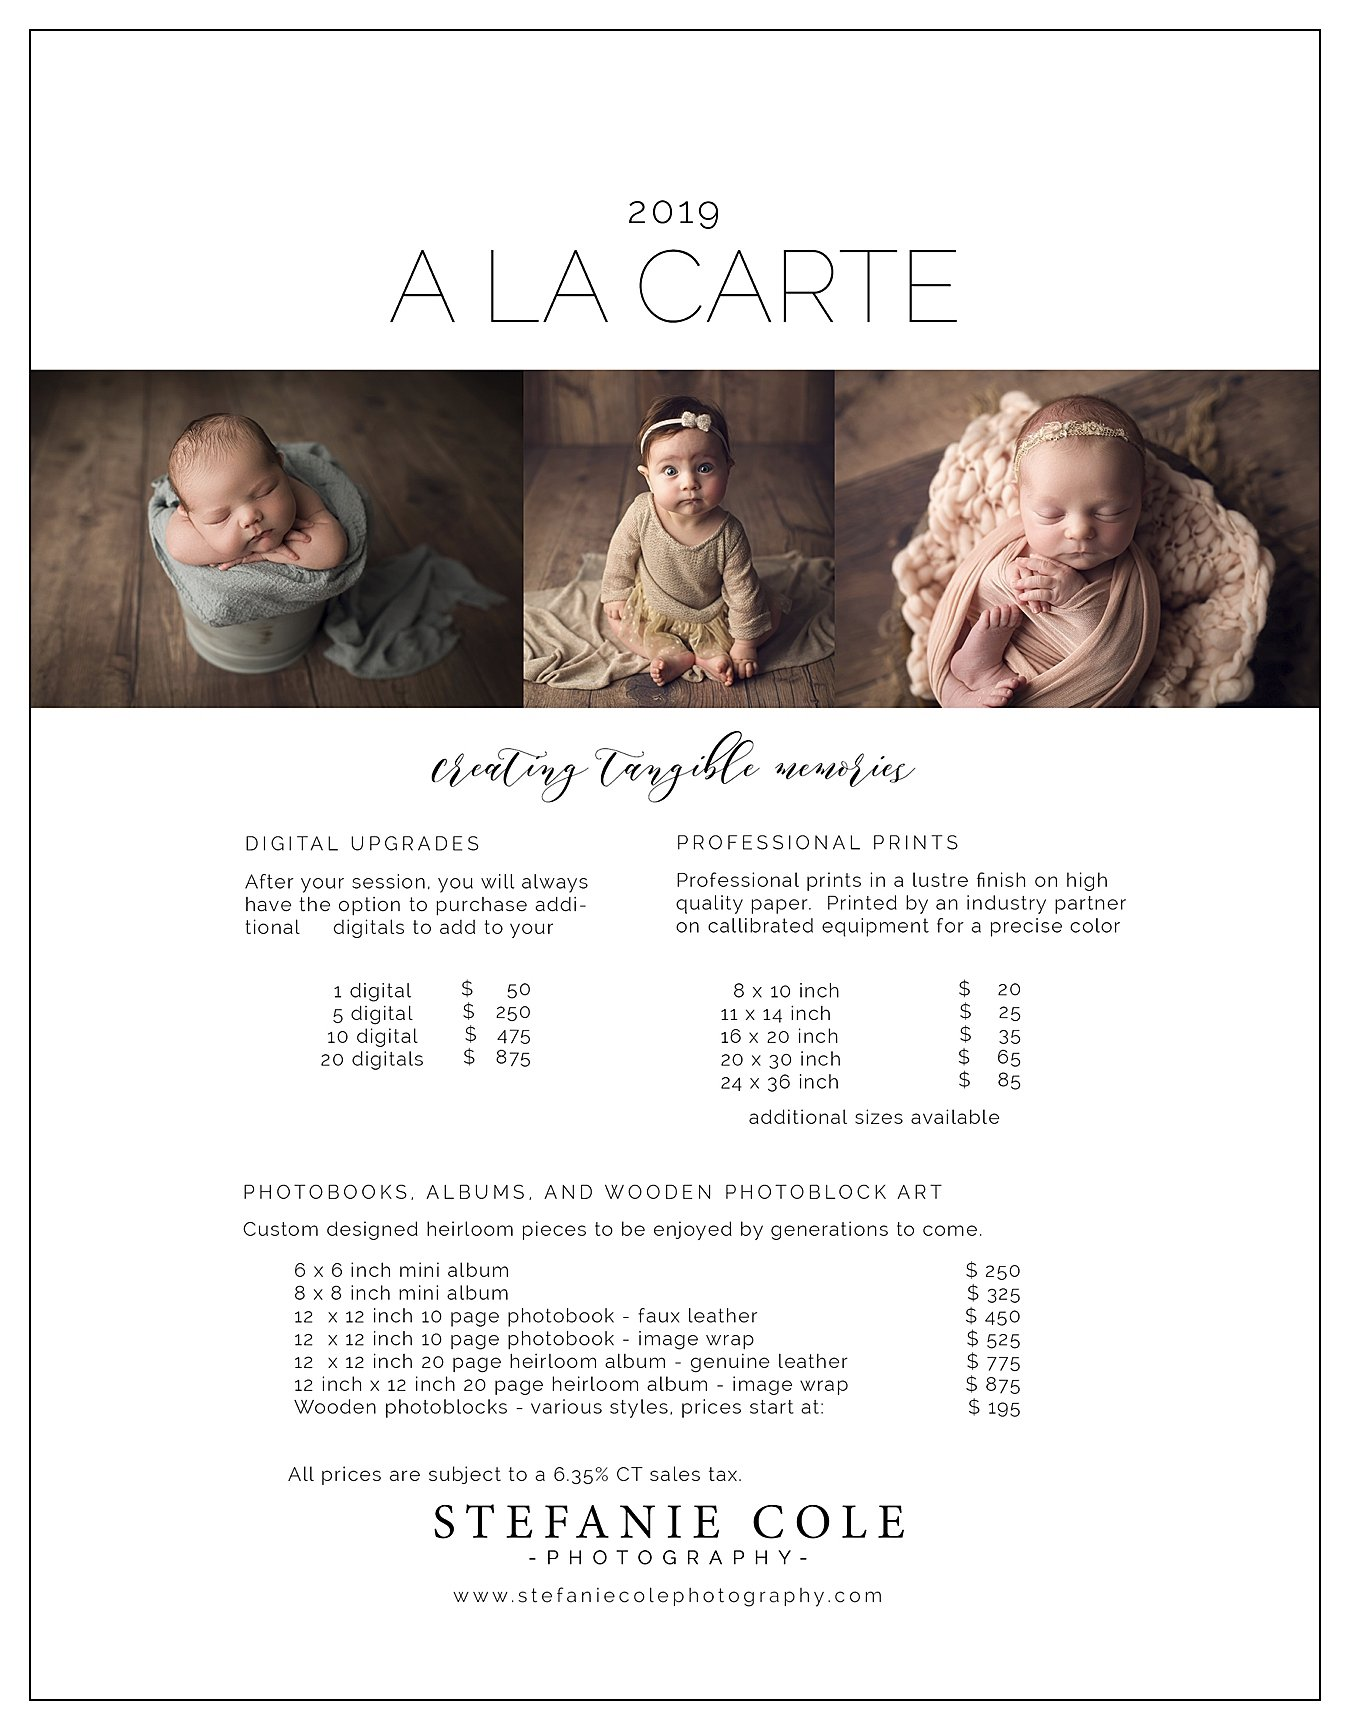 PRICING - Stefanie Cole Photography